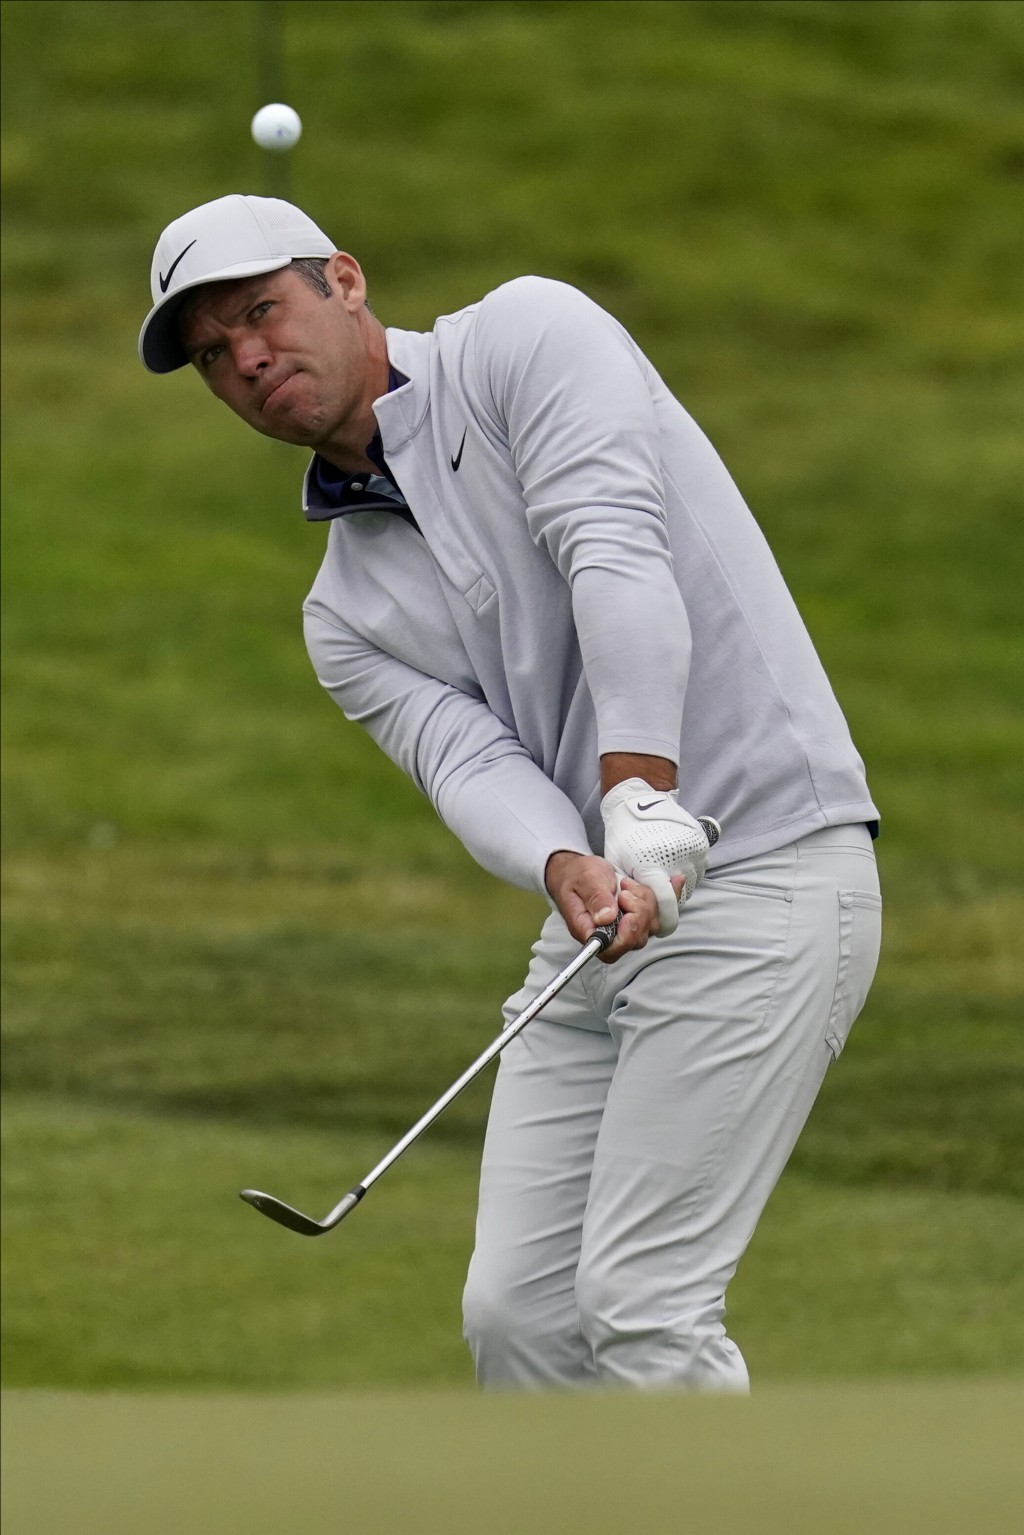 Paul Casey of England, chips to the green on the 13th hole during the final round of the PGA Championship golf tournament at TPC Harding Park Sunday, ...